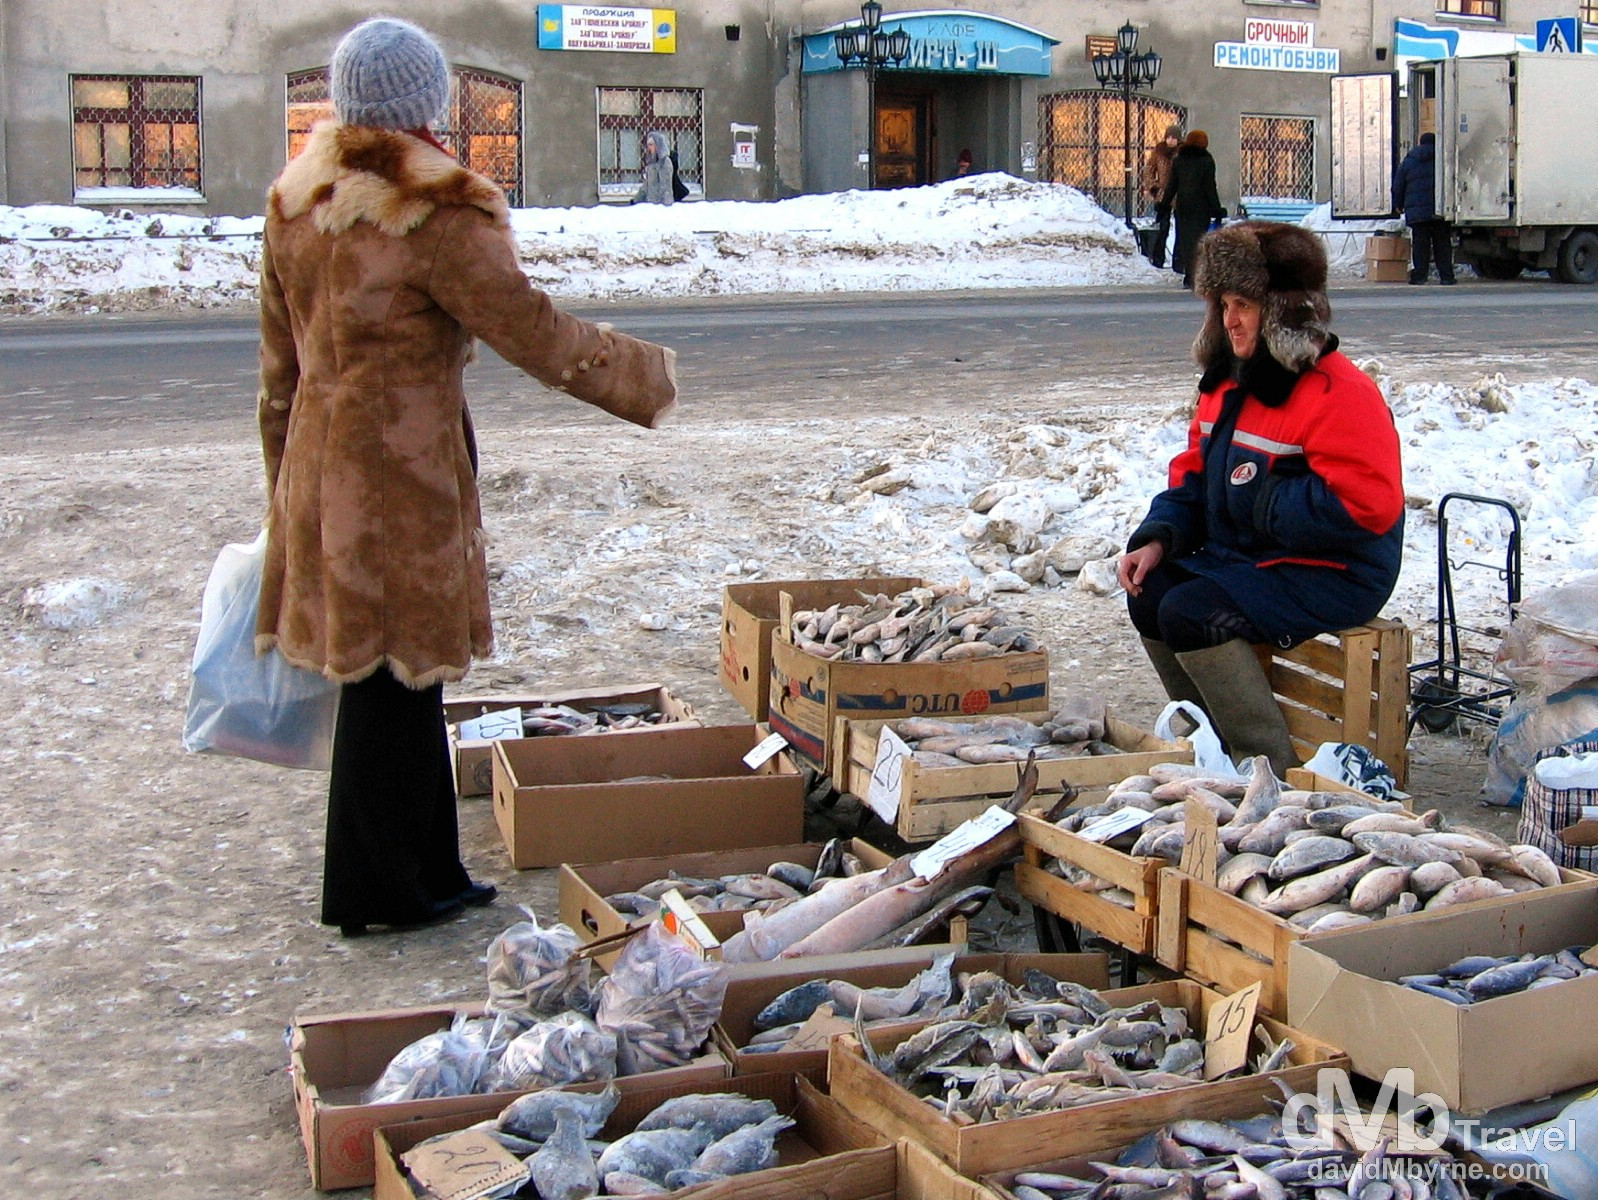 Fish for sale outside the Old Town market in Tobolsk, Siberian Russia. February 22, 2006.